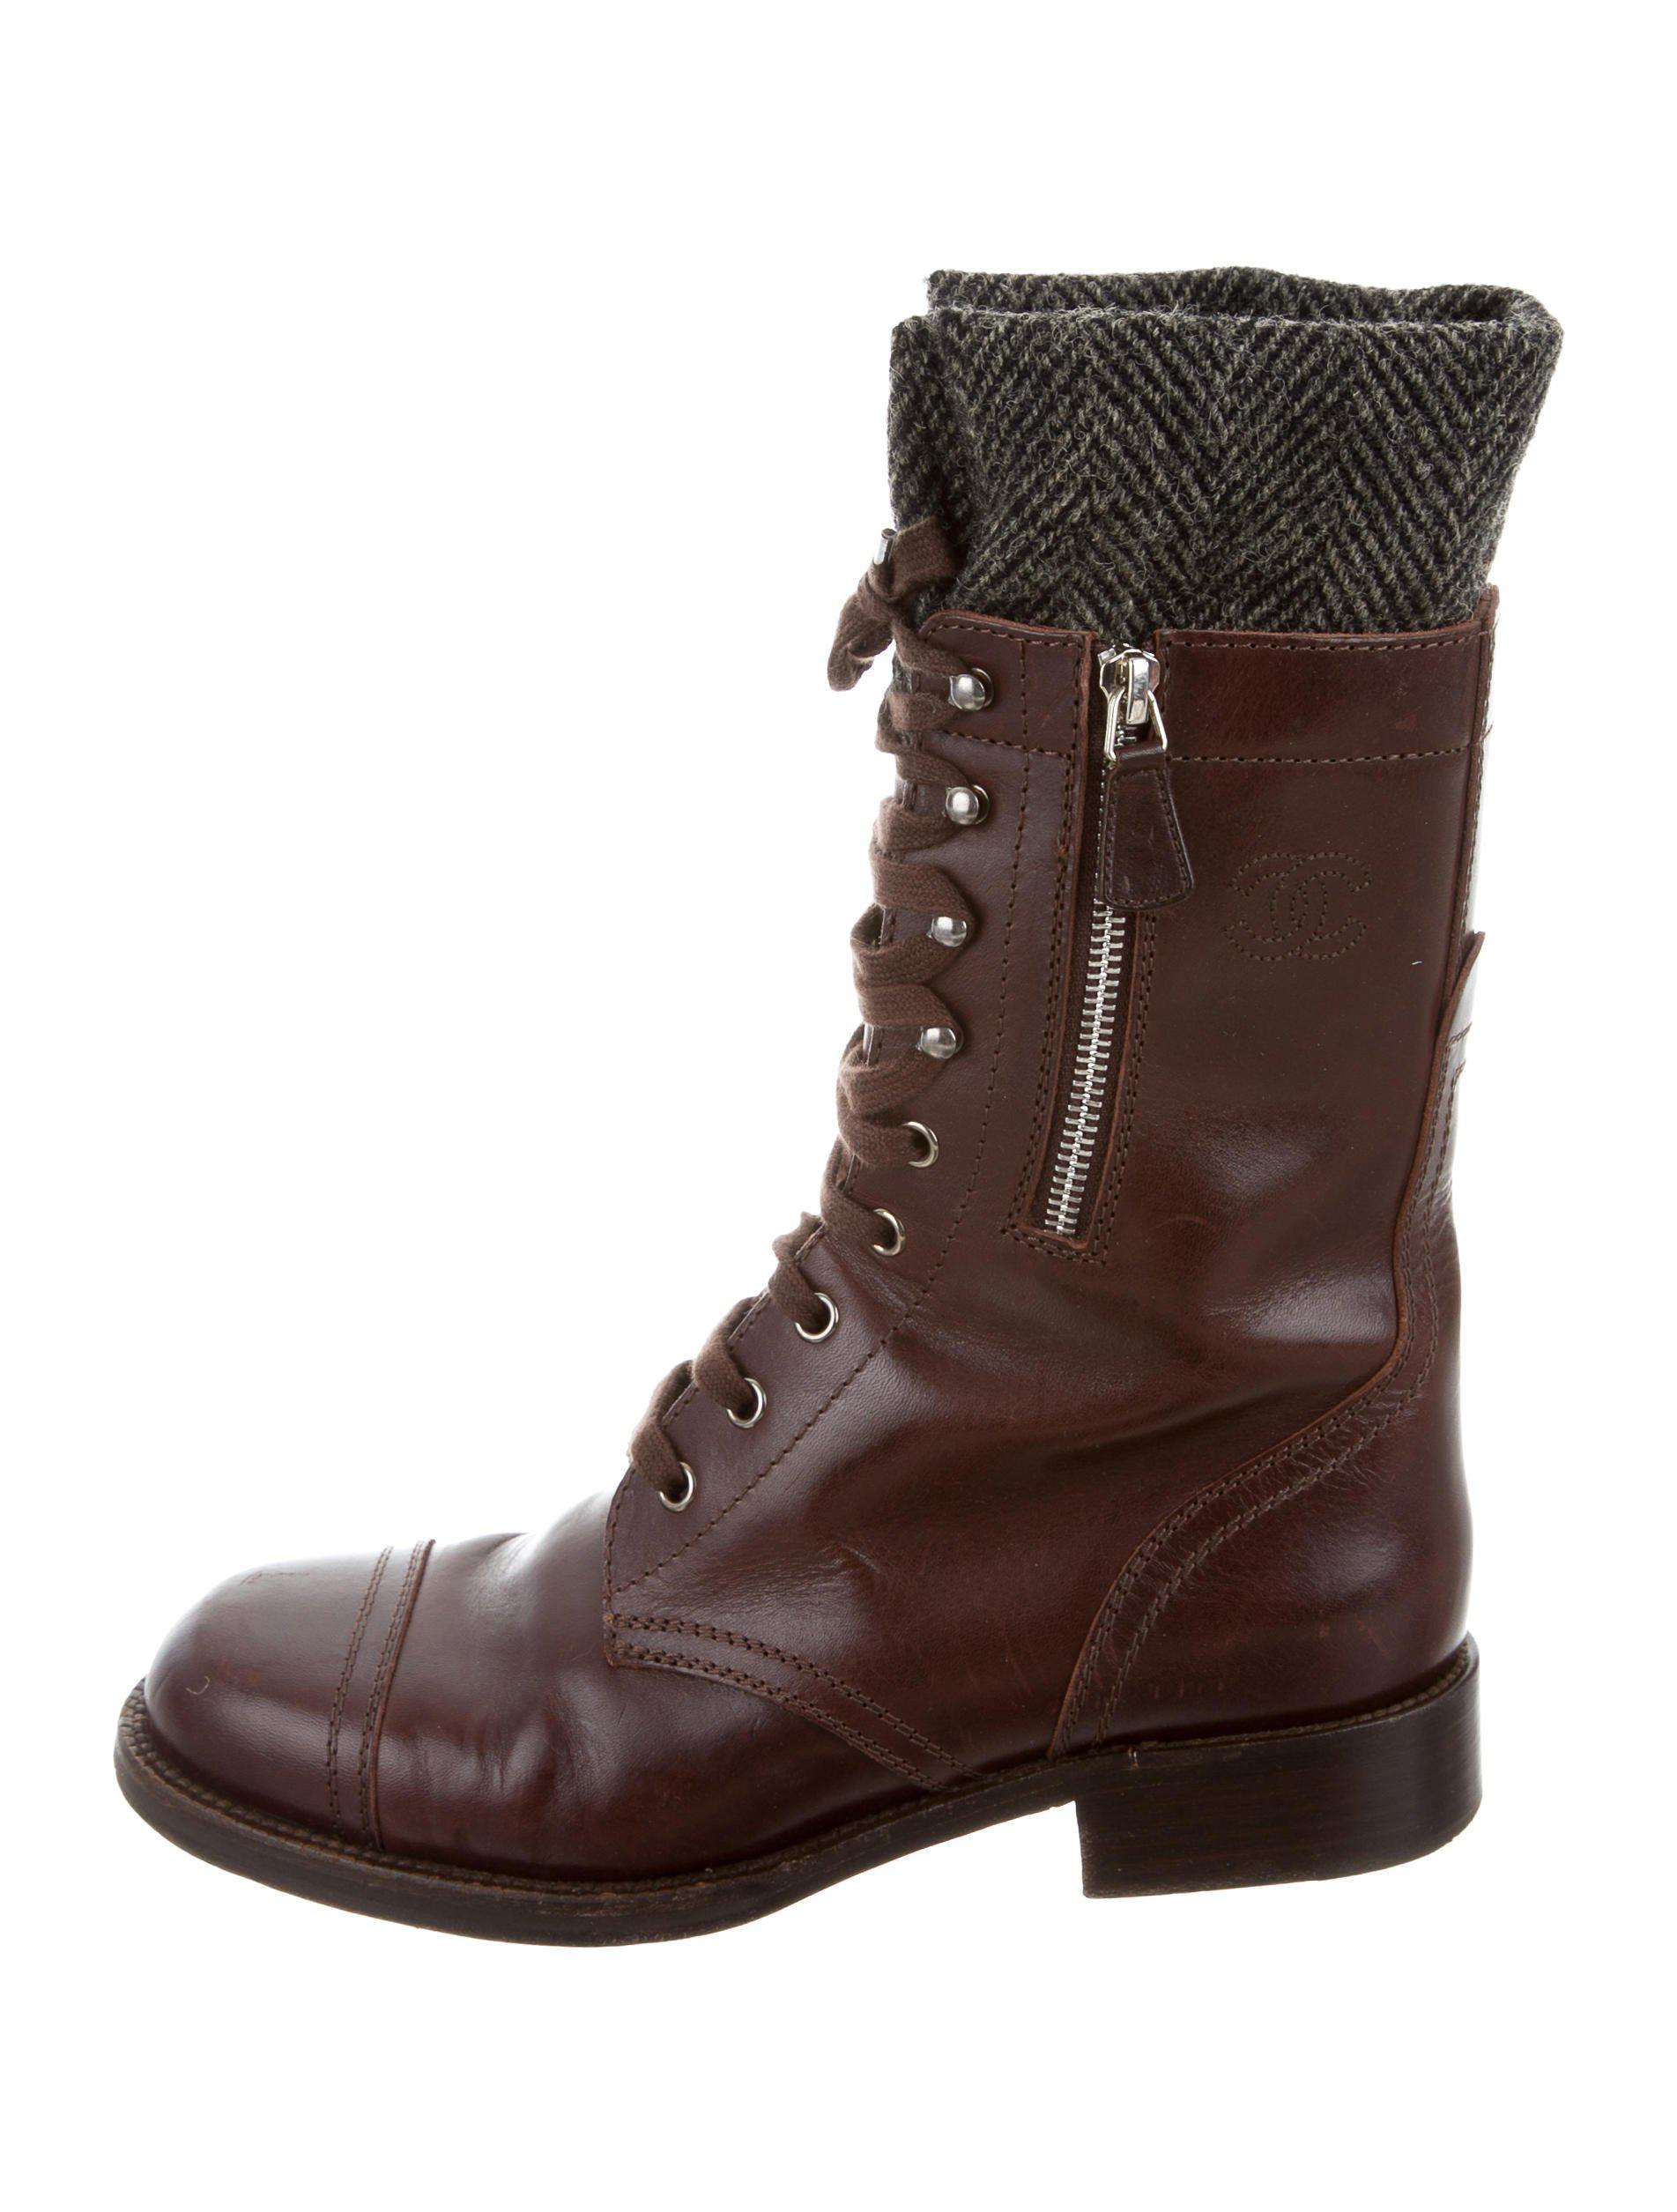 37e3855b798 Lyst - Chanel Cc Combat Boots in Brown for Men